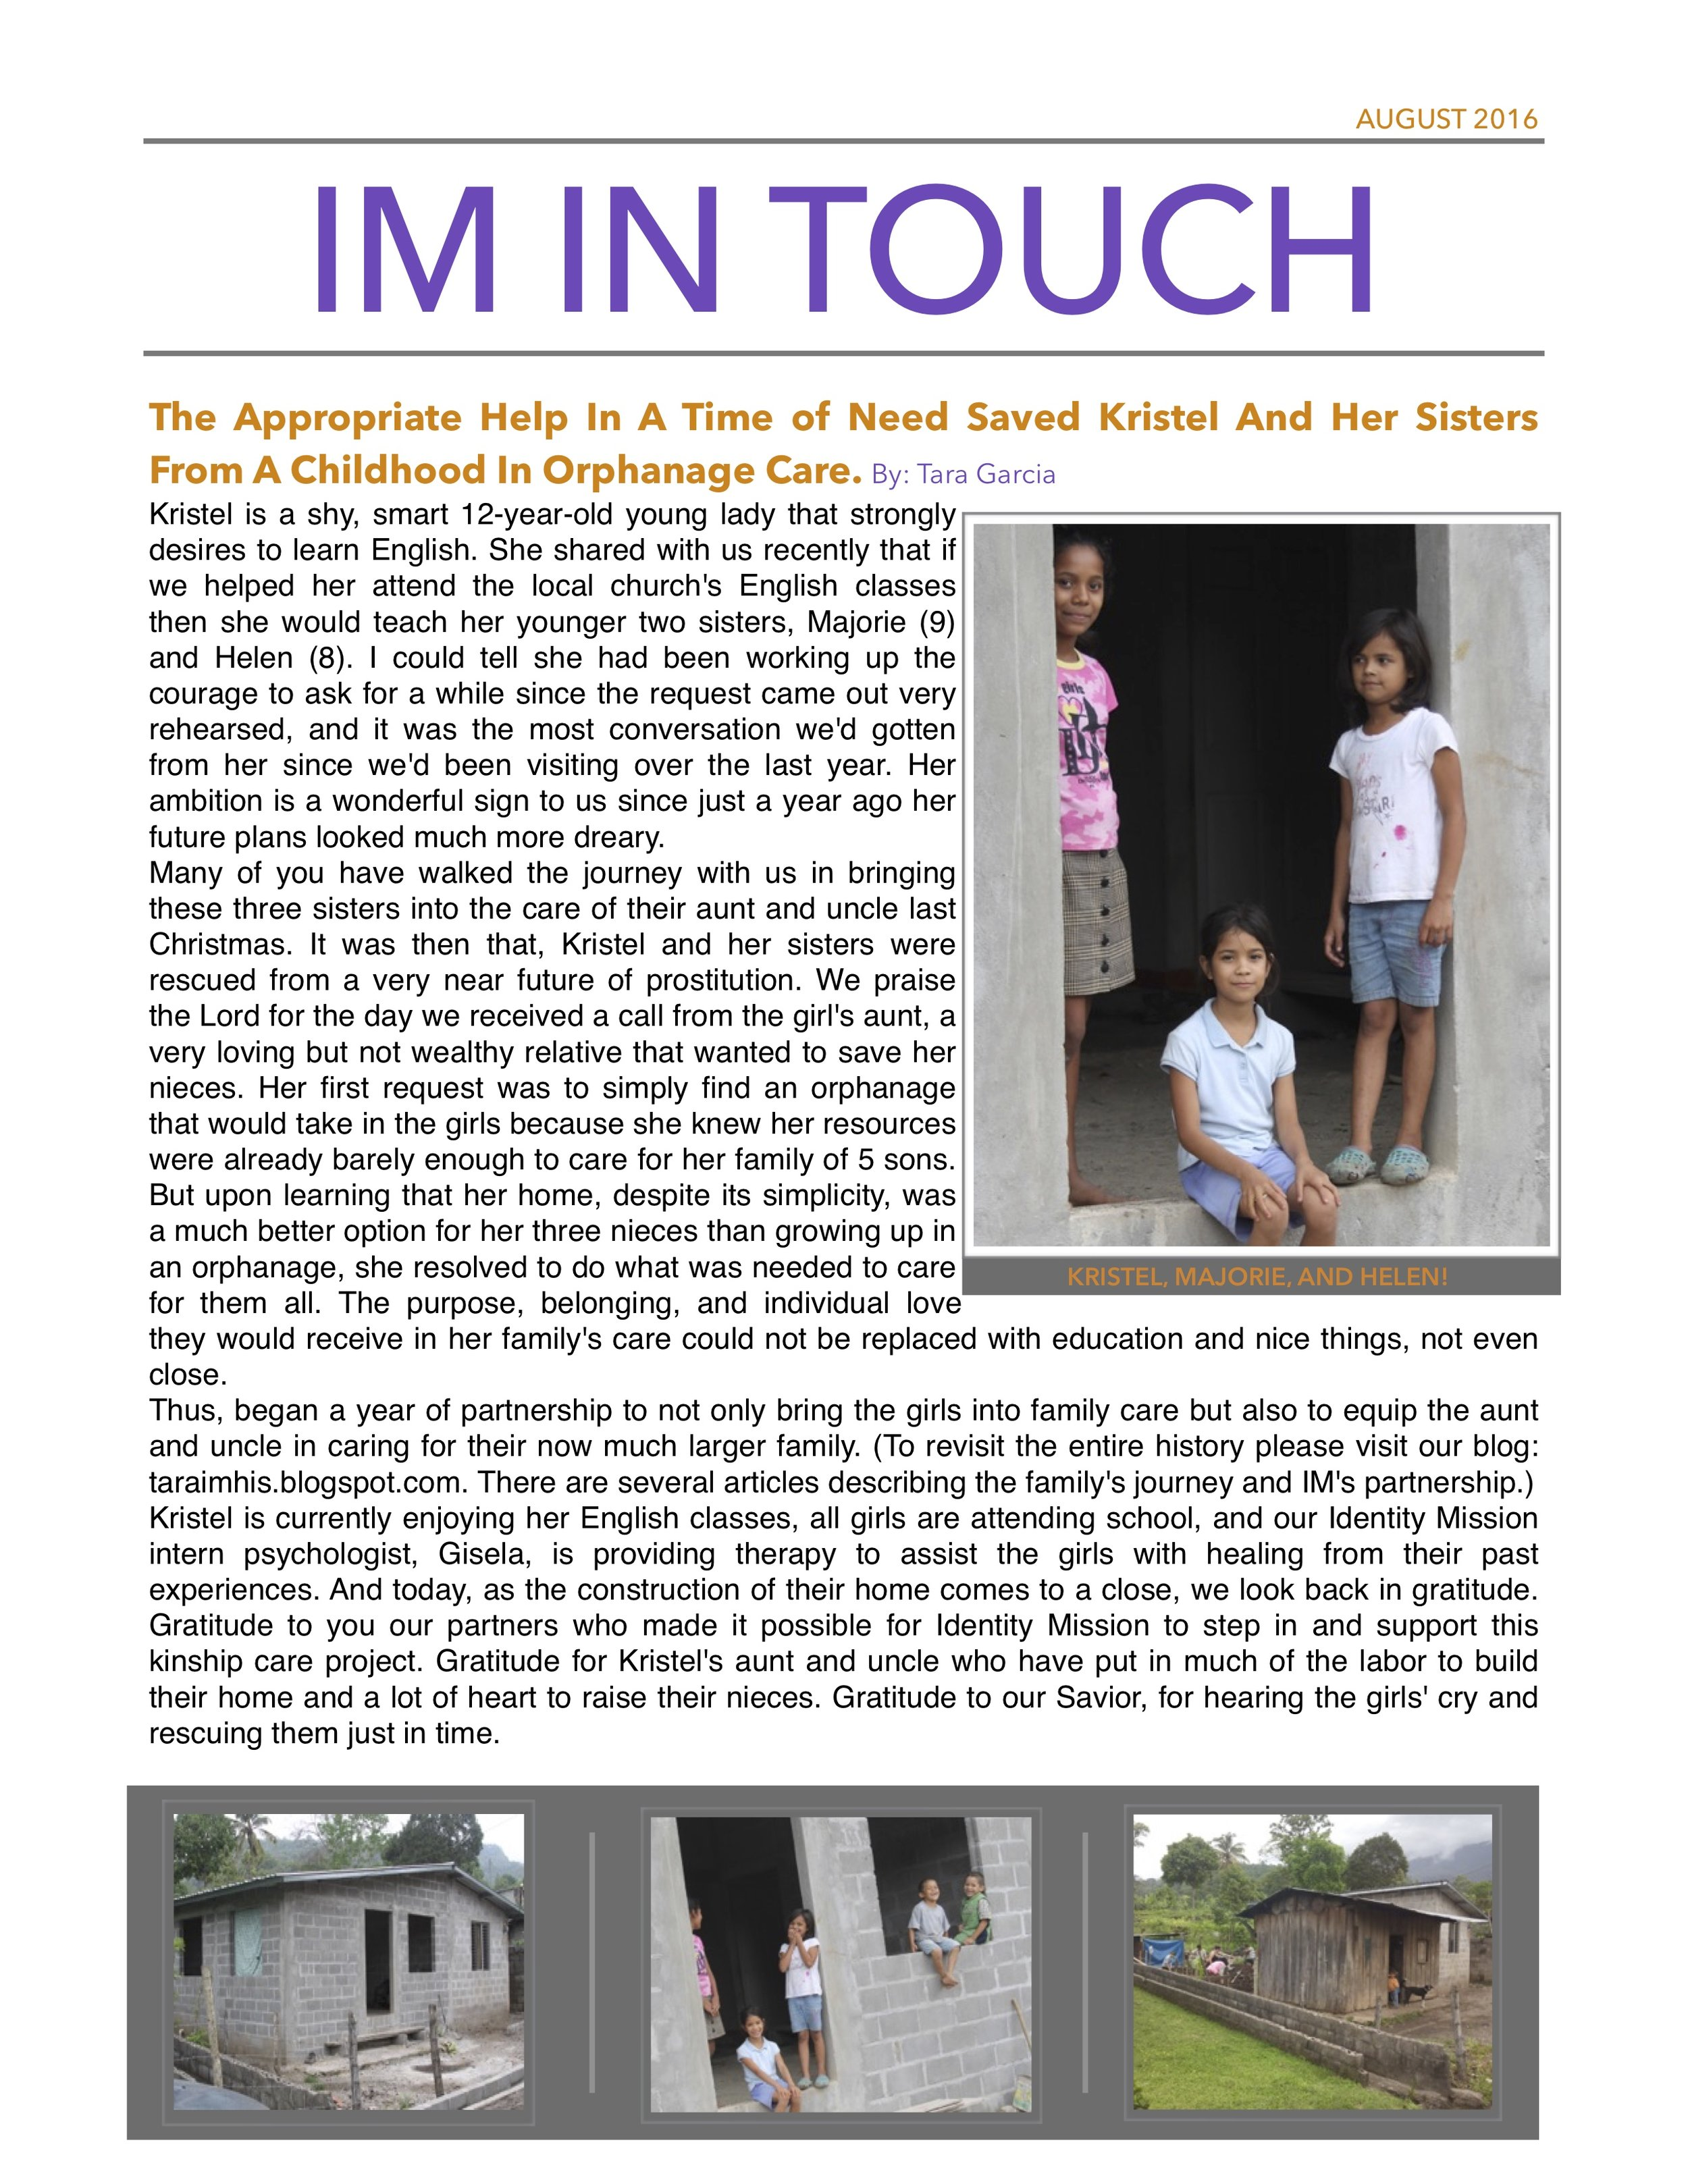 IM Newsletter August copy.jpg